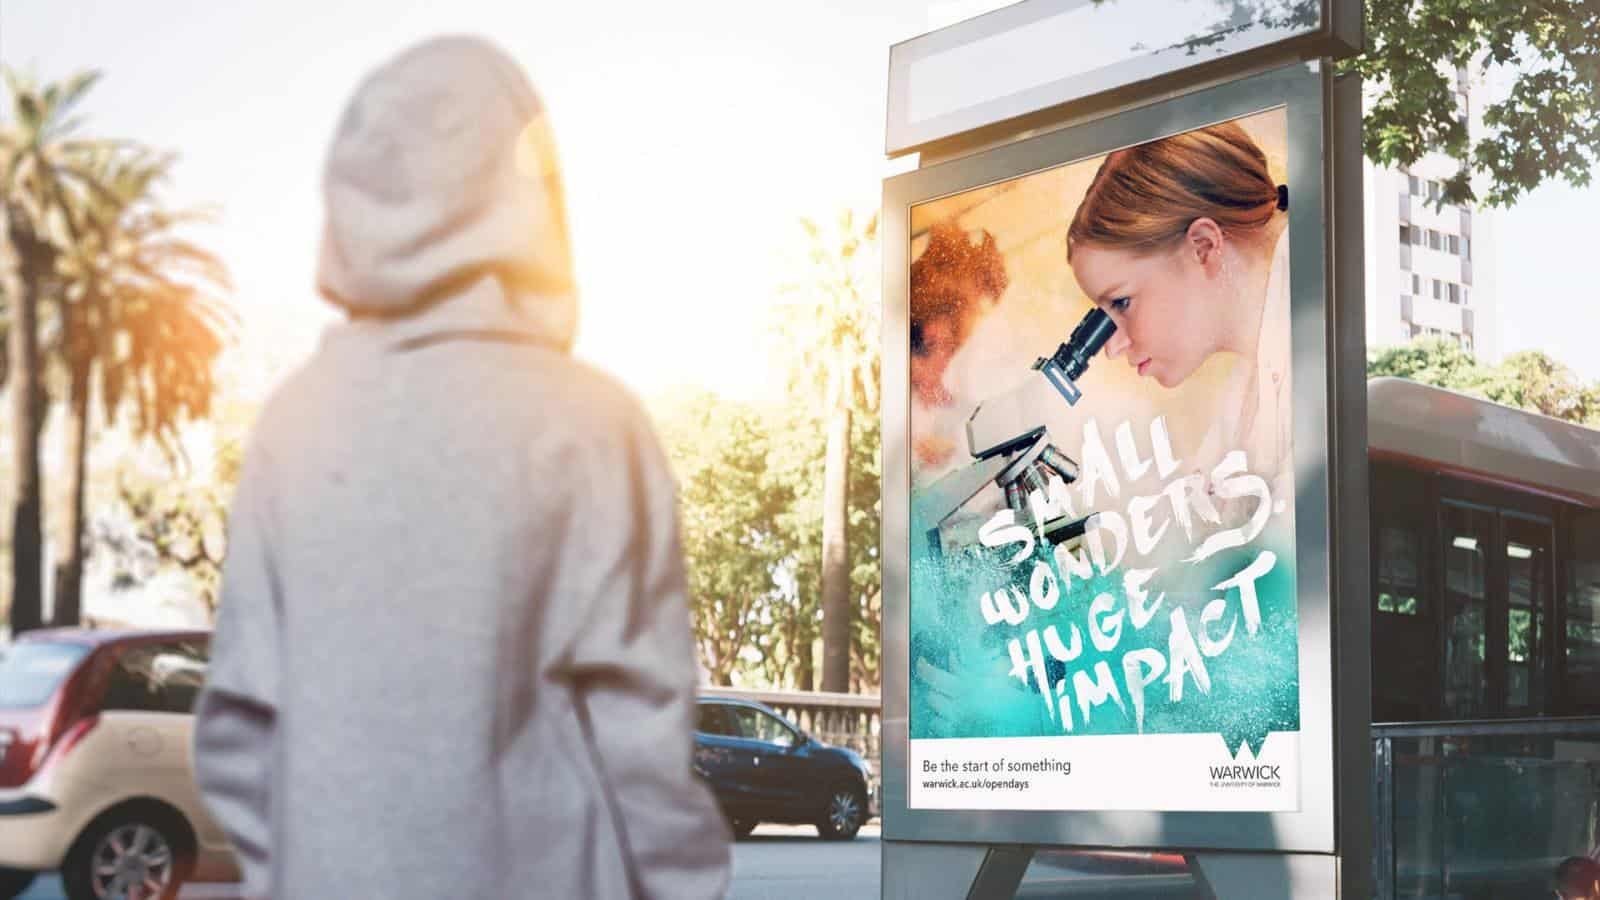 University of Warwick undergraduate campaign outdoor advert